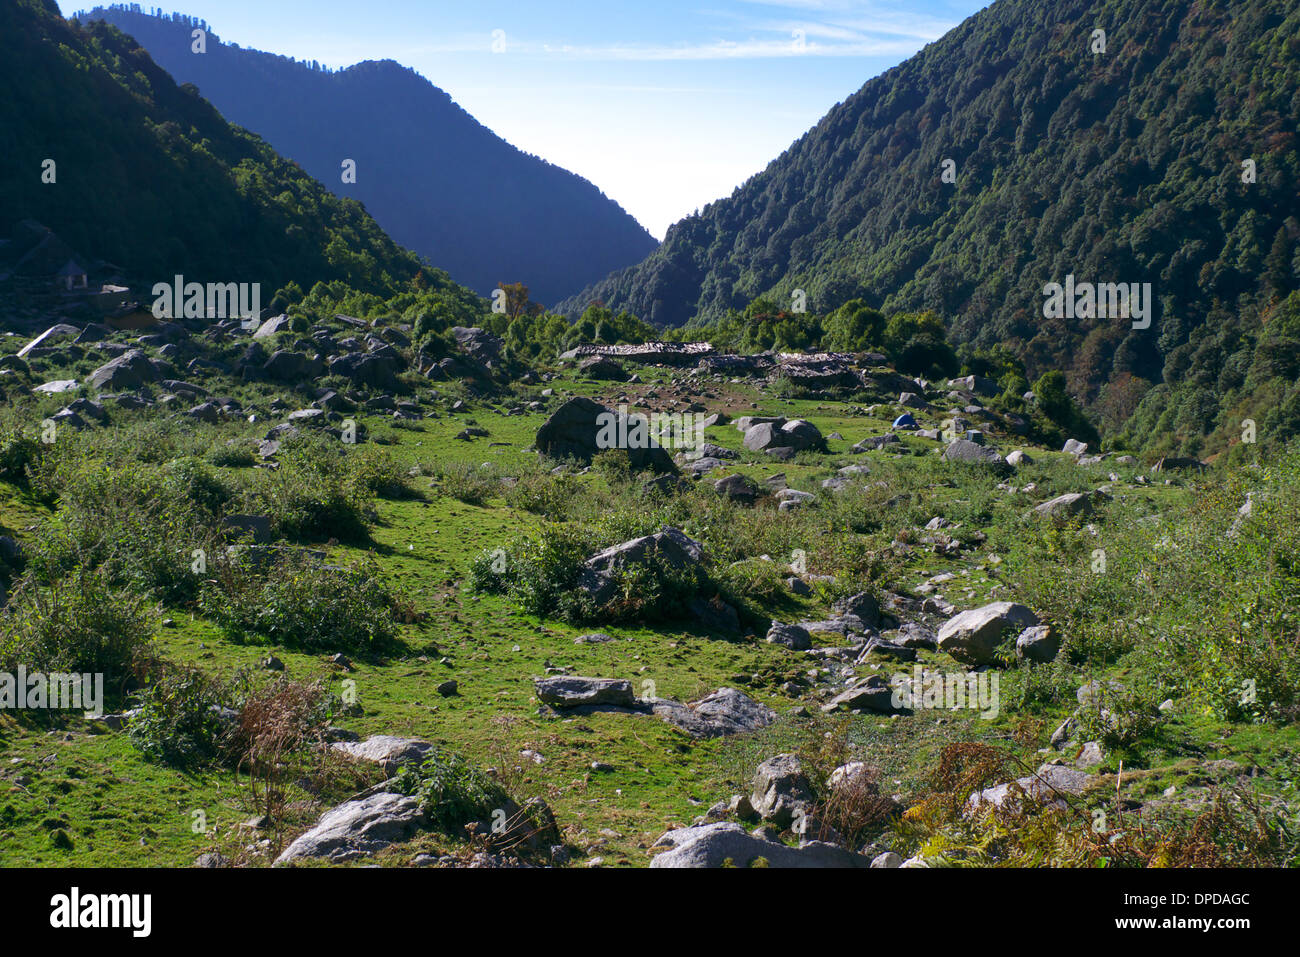 Meadow and wild campsite, Bhaga, nr Mcleodganj, Himachal Pradesh, N. India. - Stock Image